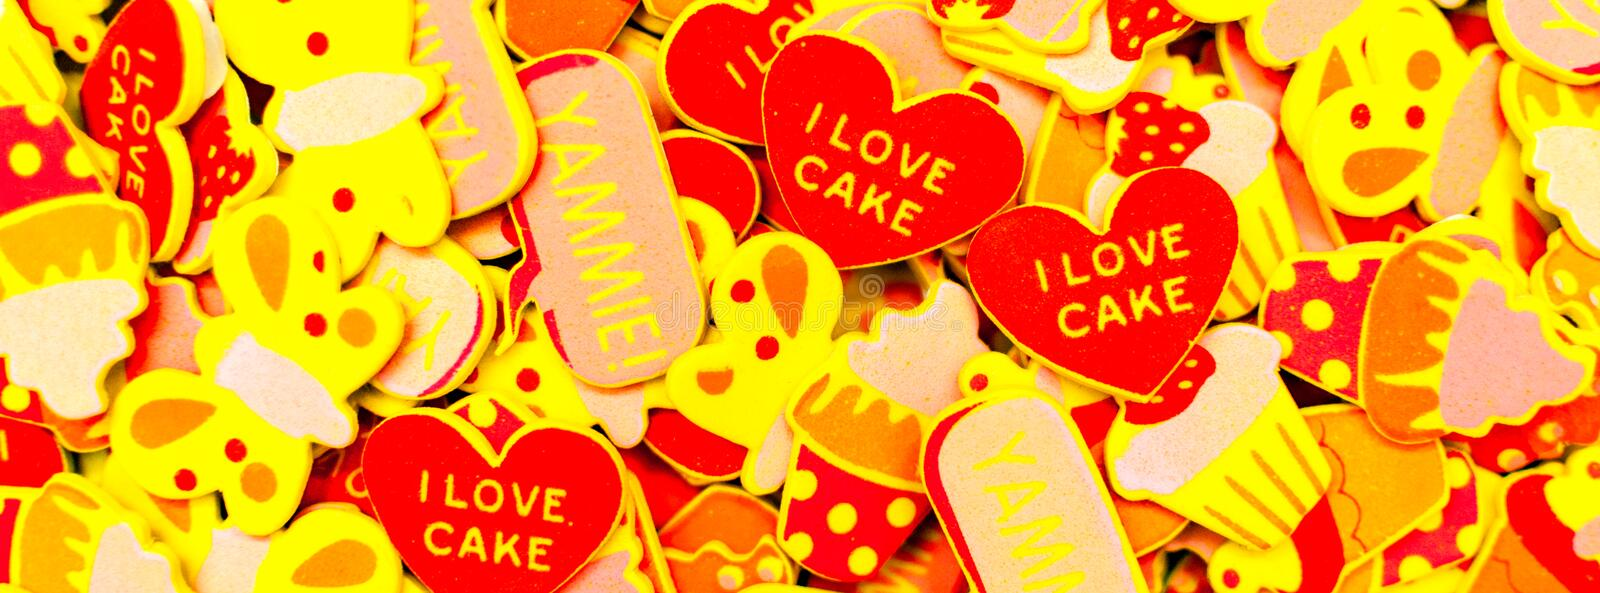 Top view of lots of colourful foam stickers depicting hearts, butterflies and cupcakes. Summer or joy concept. Facebook banner. royalty free stock photos